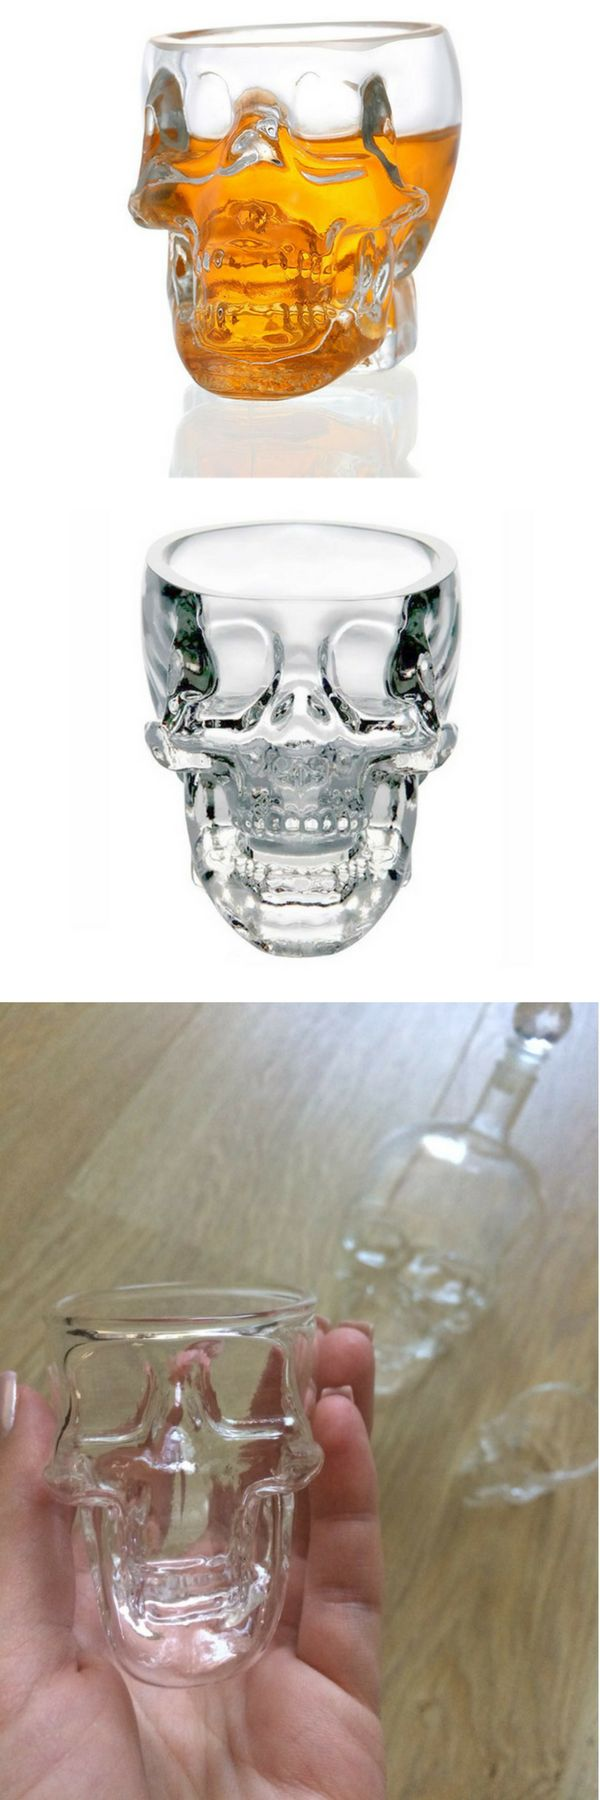 This Skull Shot Glass is the Perfect gift for any occasion! Real nice gift idea for someone that loves Skulls!